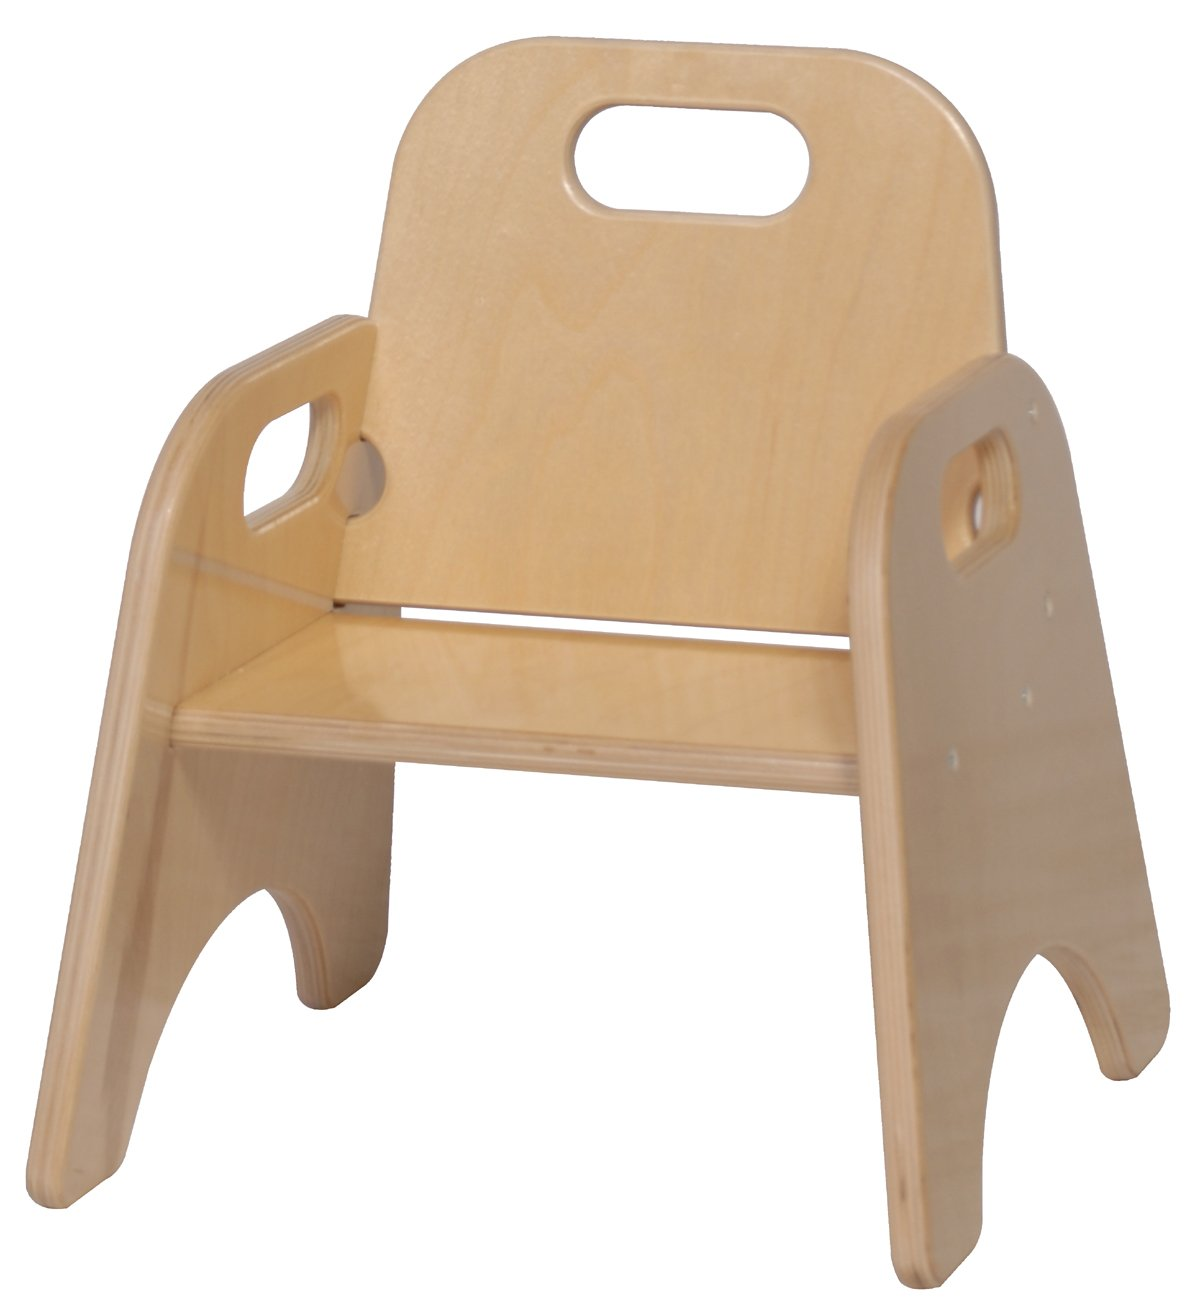 Steffy wood products 7 inch toddler chair furniture chairs for Toddler chair